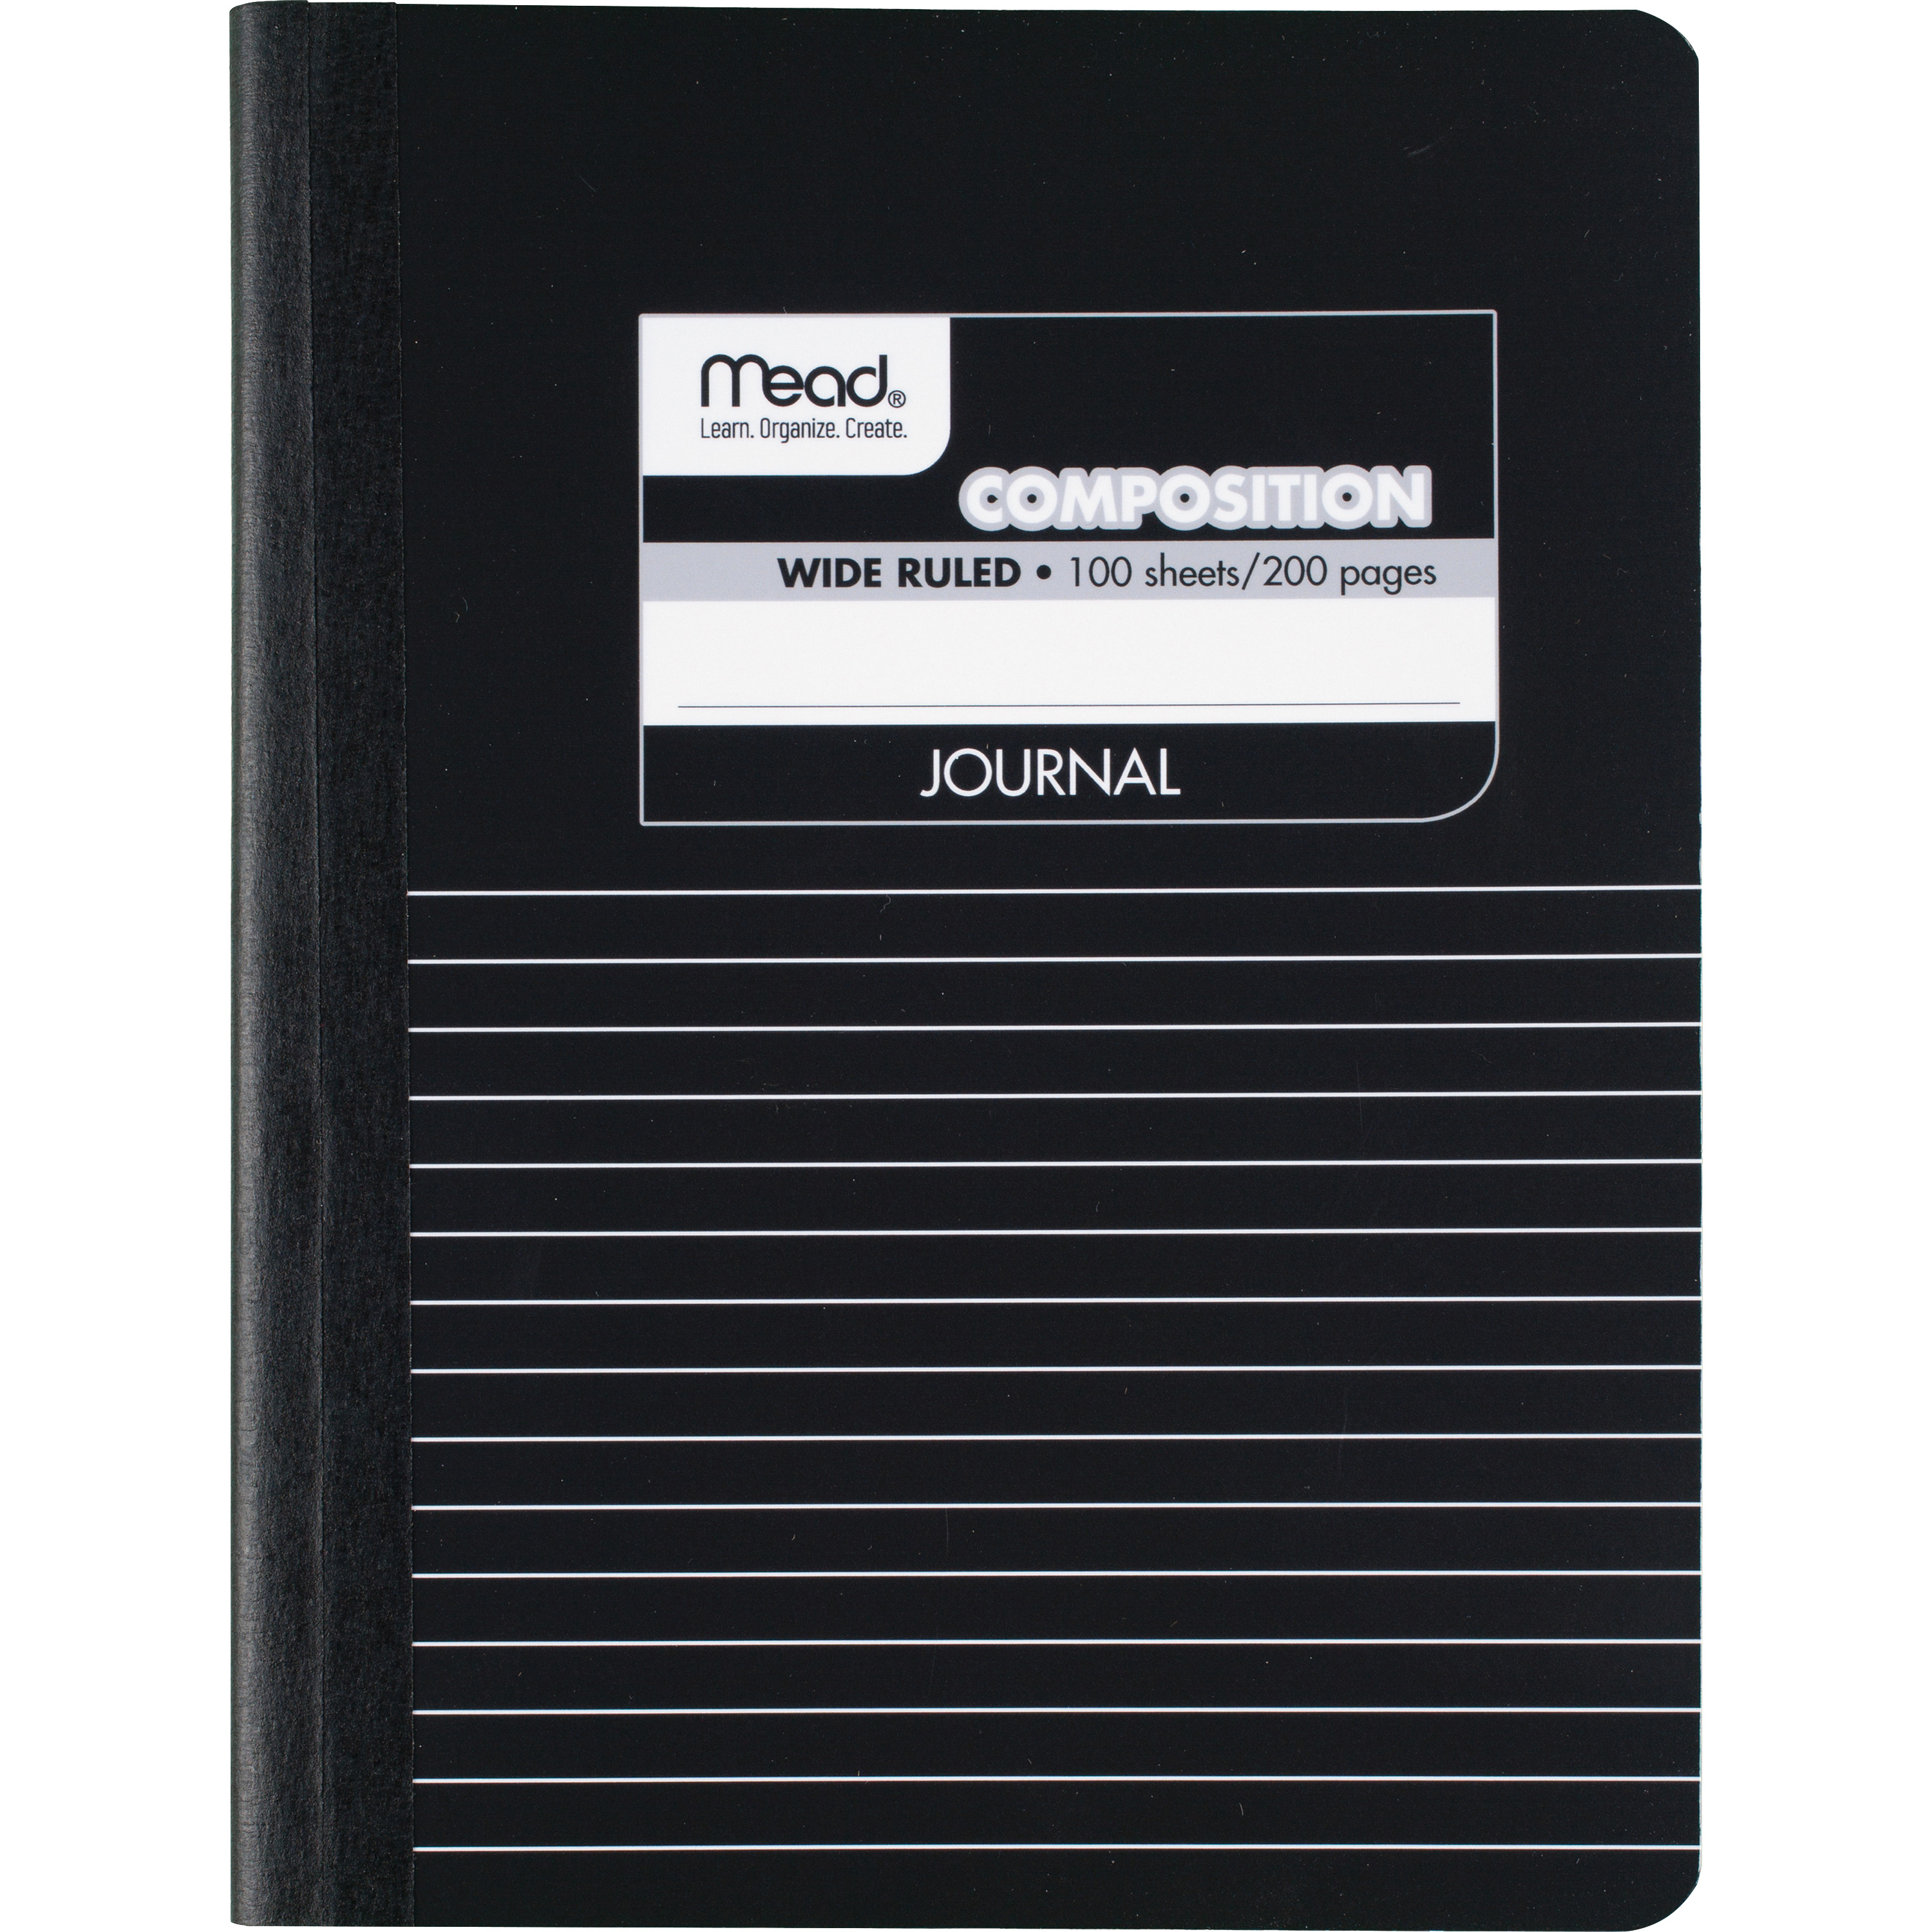 Mead Square Deal Journal Wide Ruled Composition Notebook